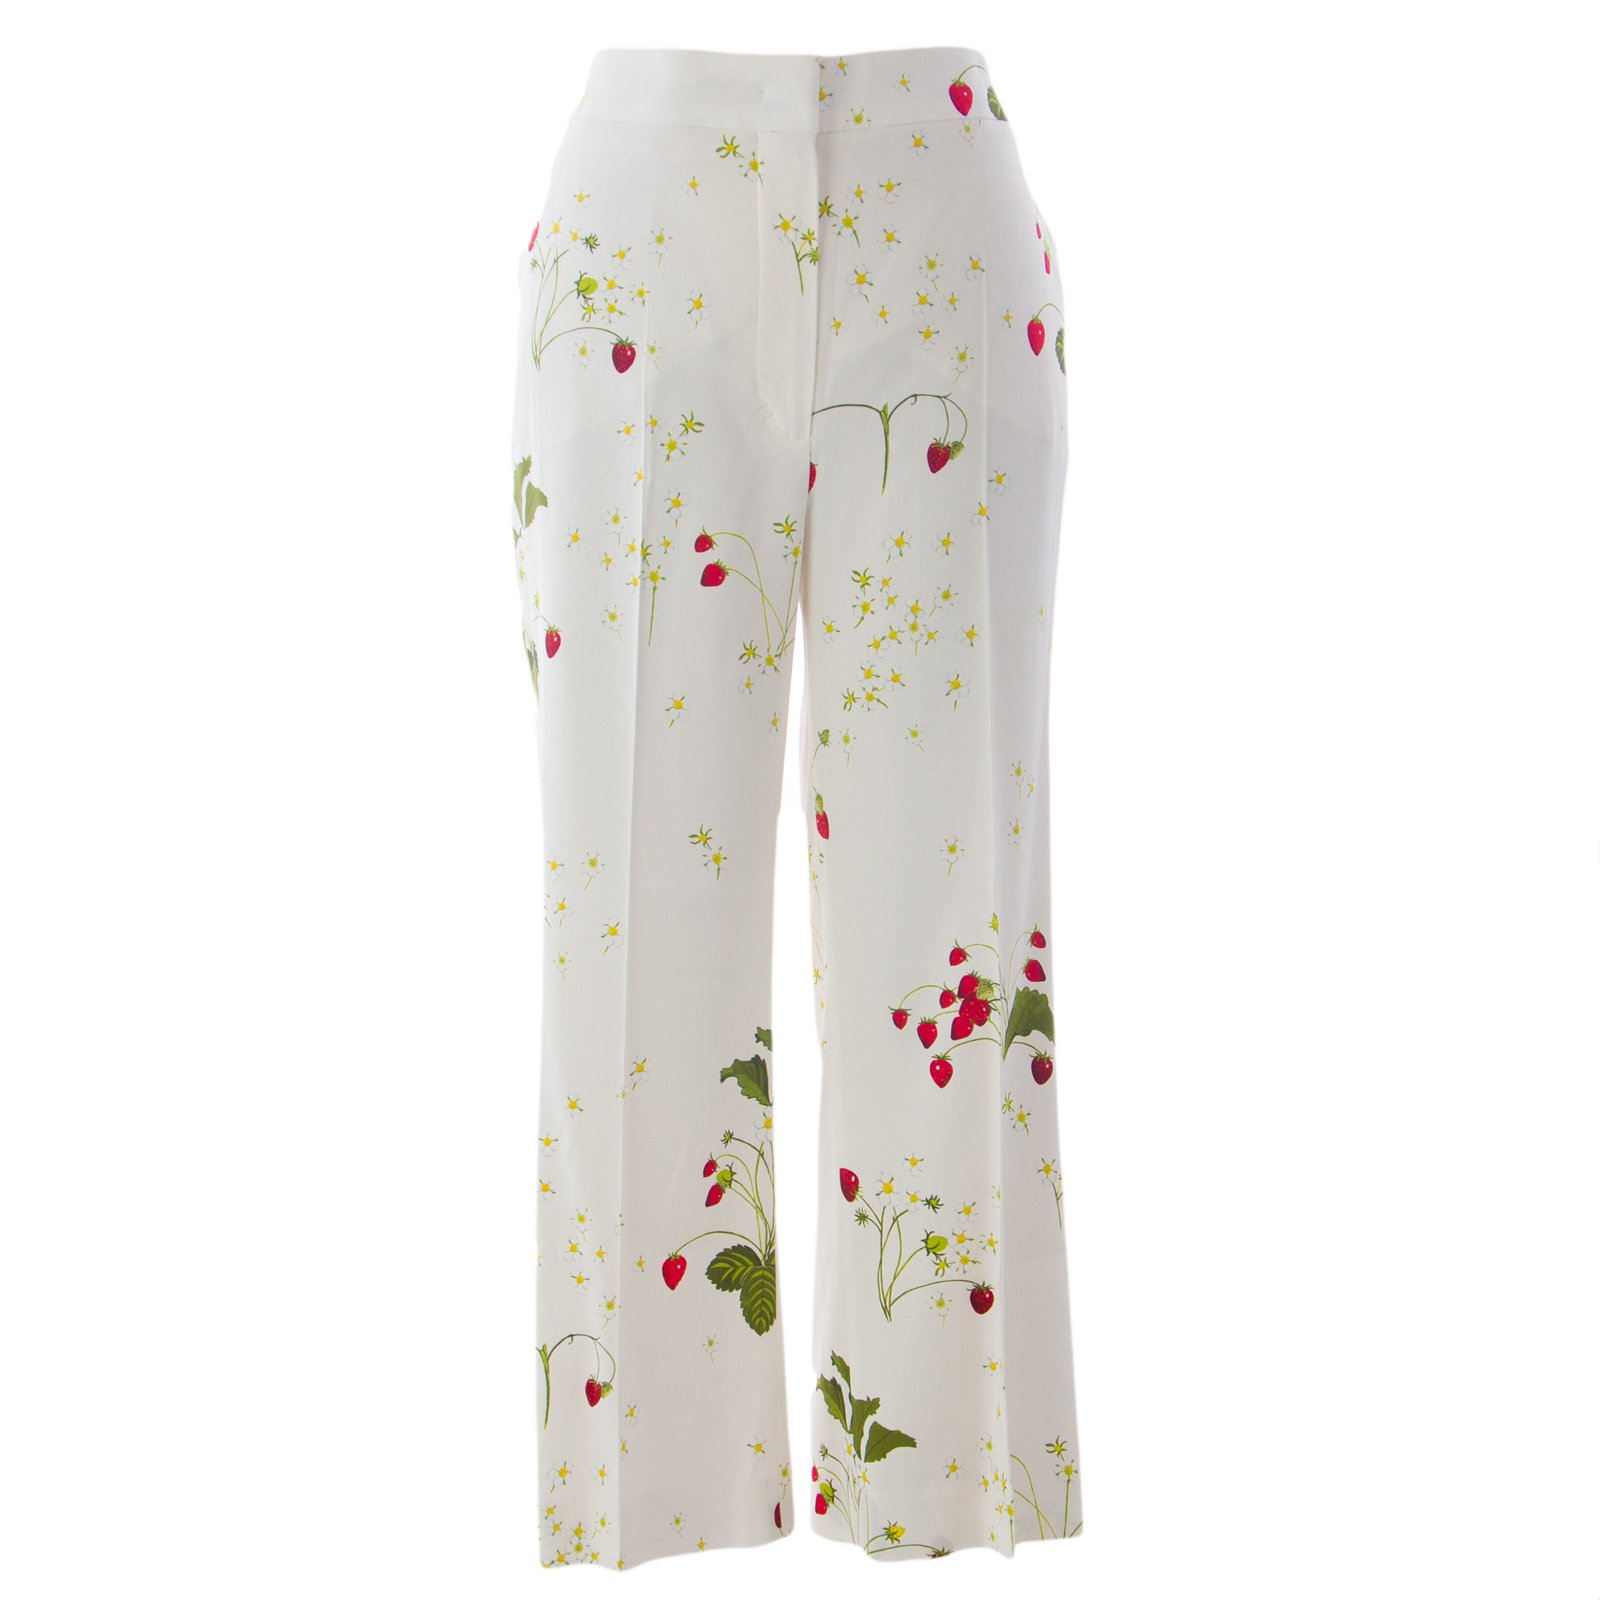 Sportmax by Max Mara Women's Glamour Printed Cropped Pants Sz 8 Ivory Strawberry